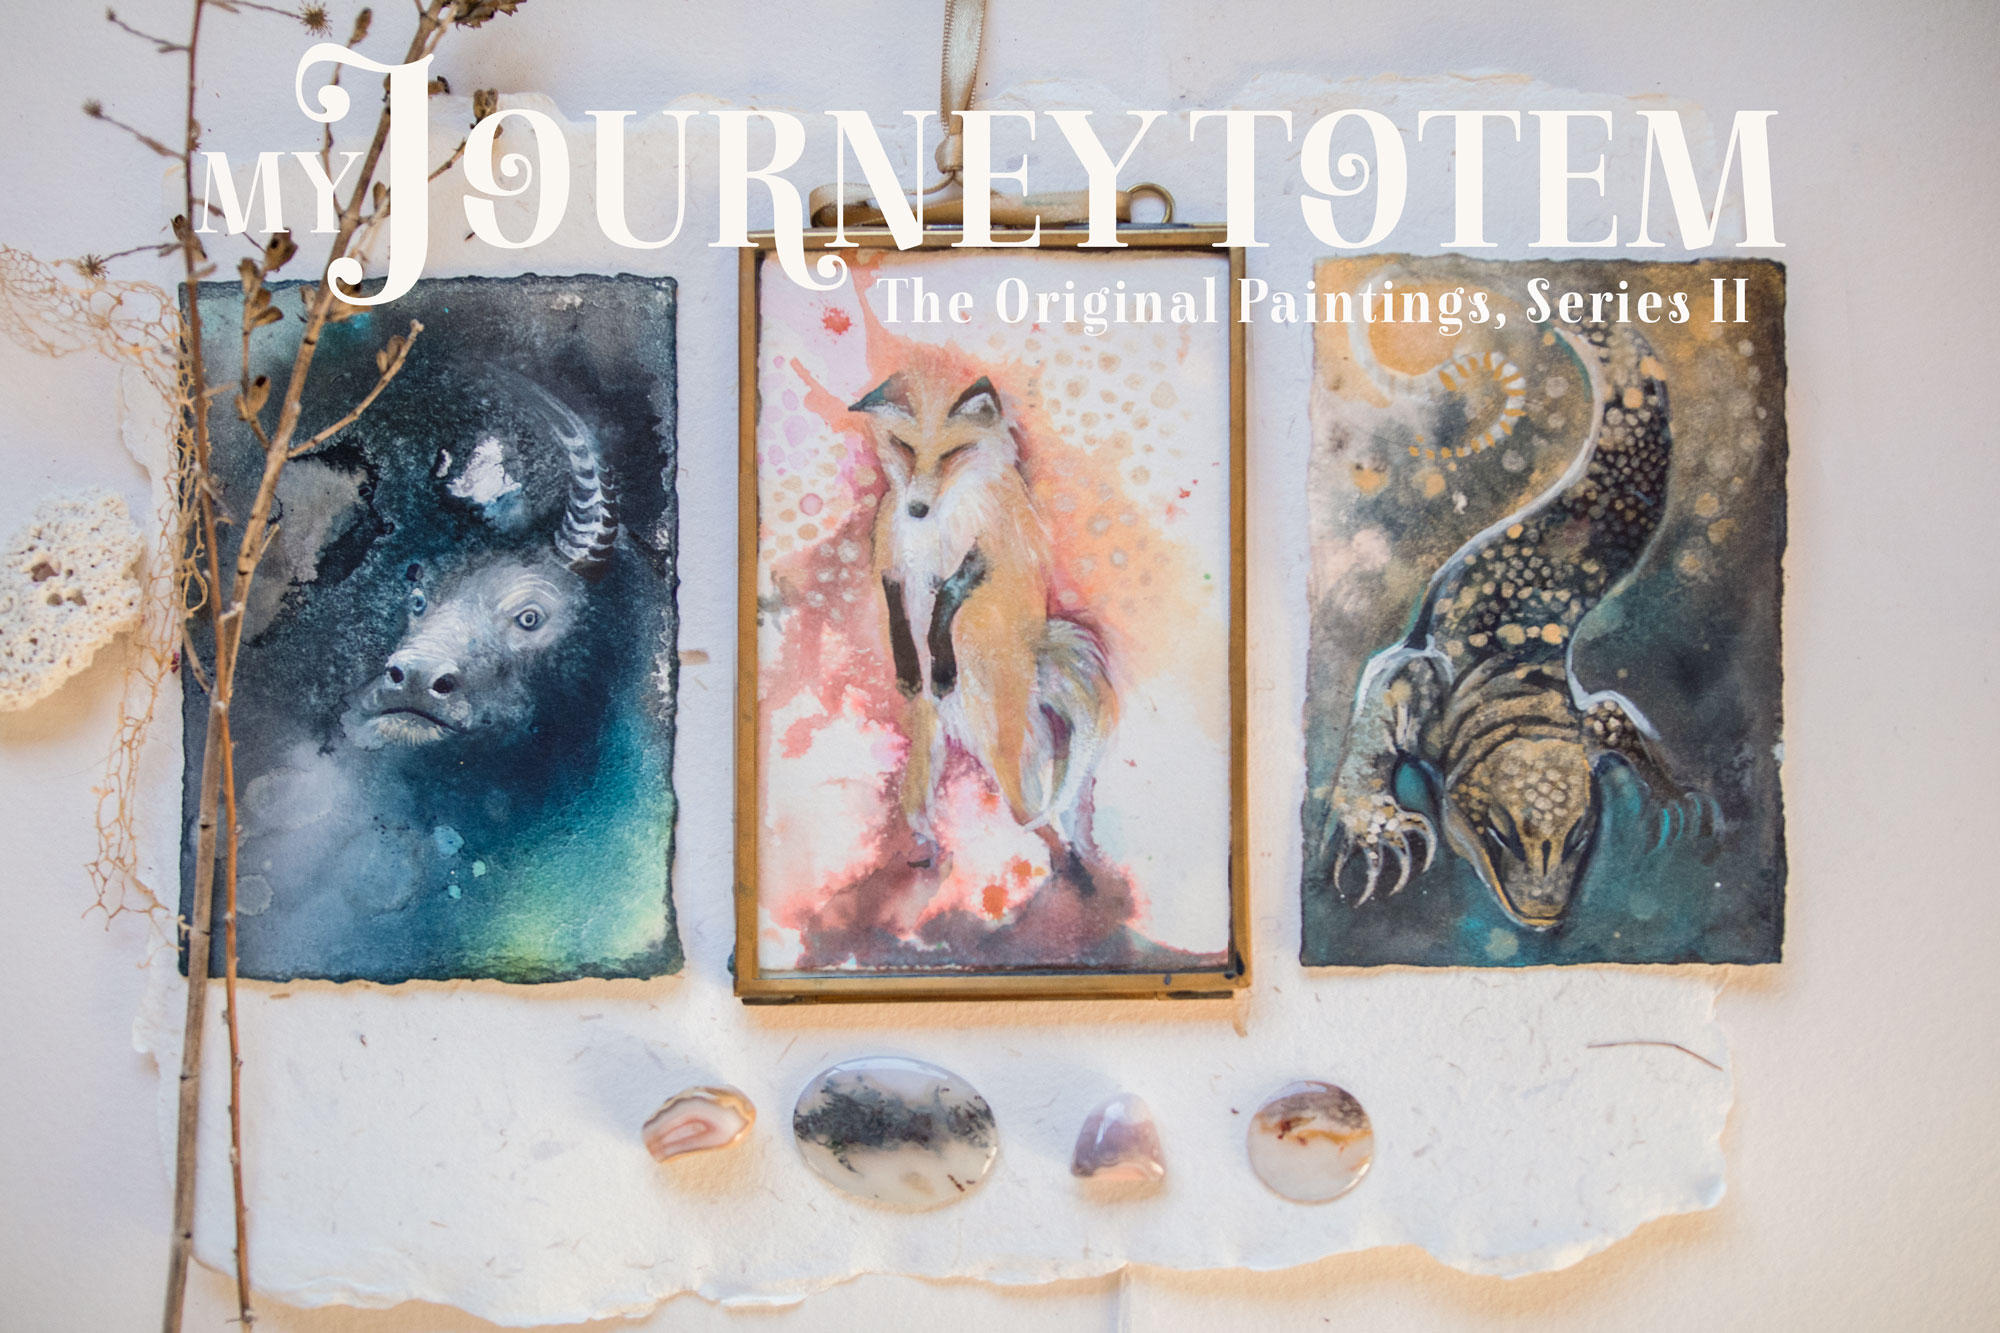 My Journey Totem Original Paintings Series II